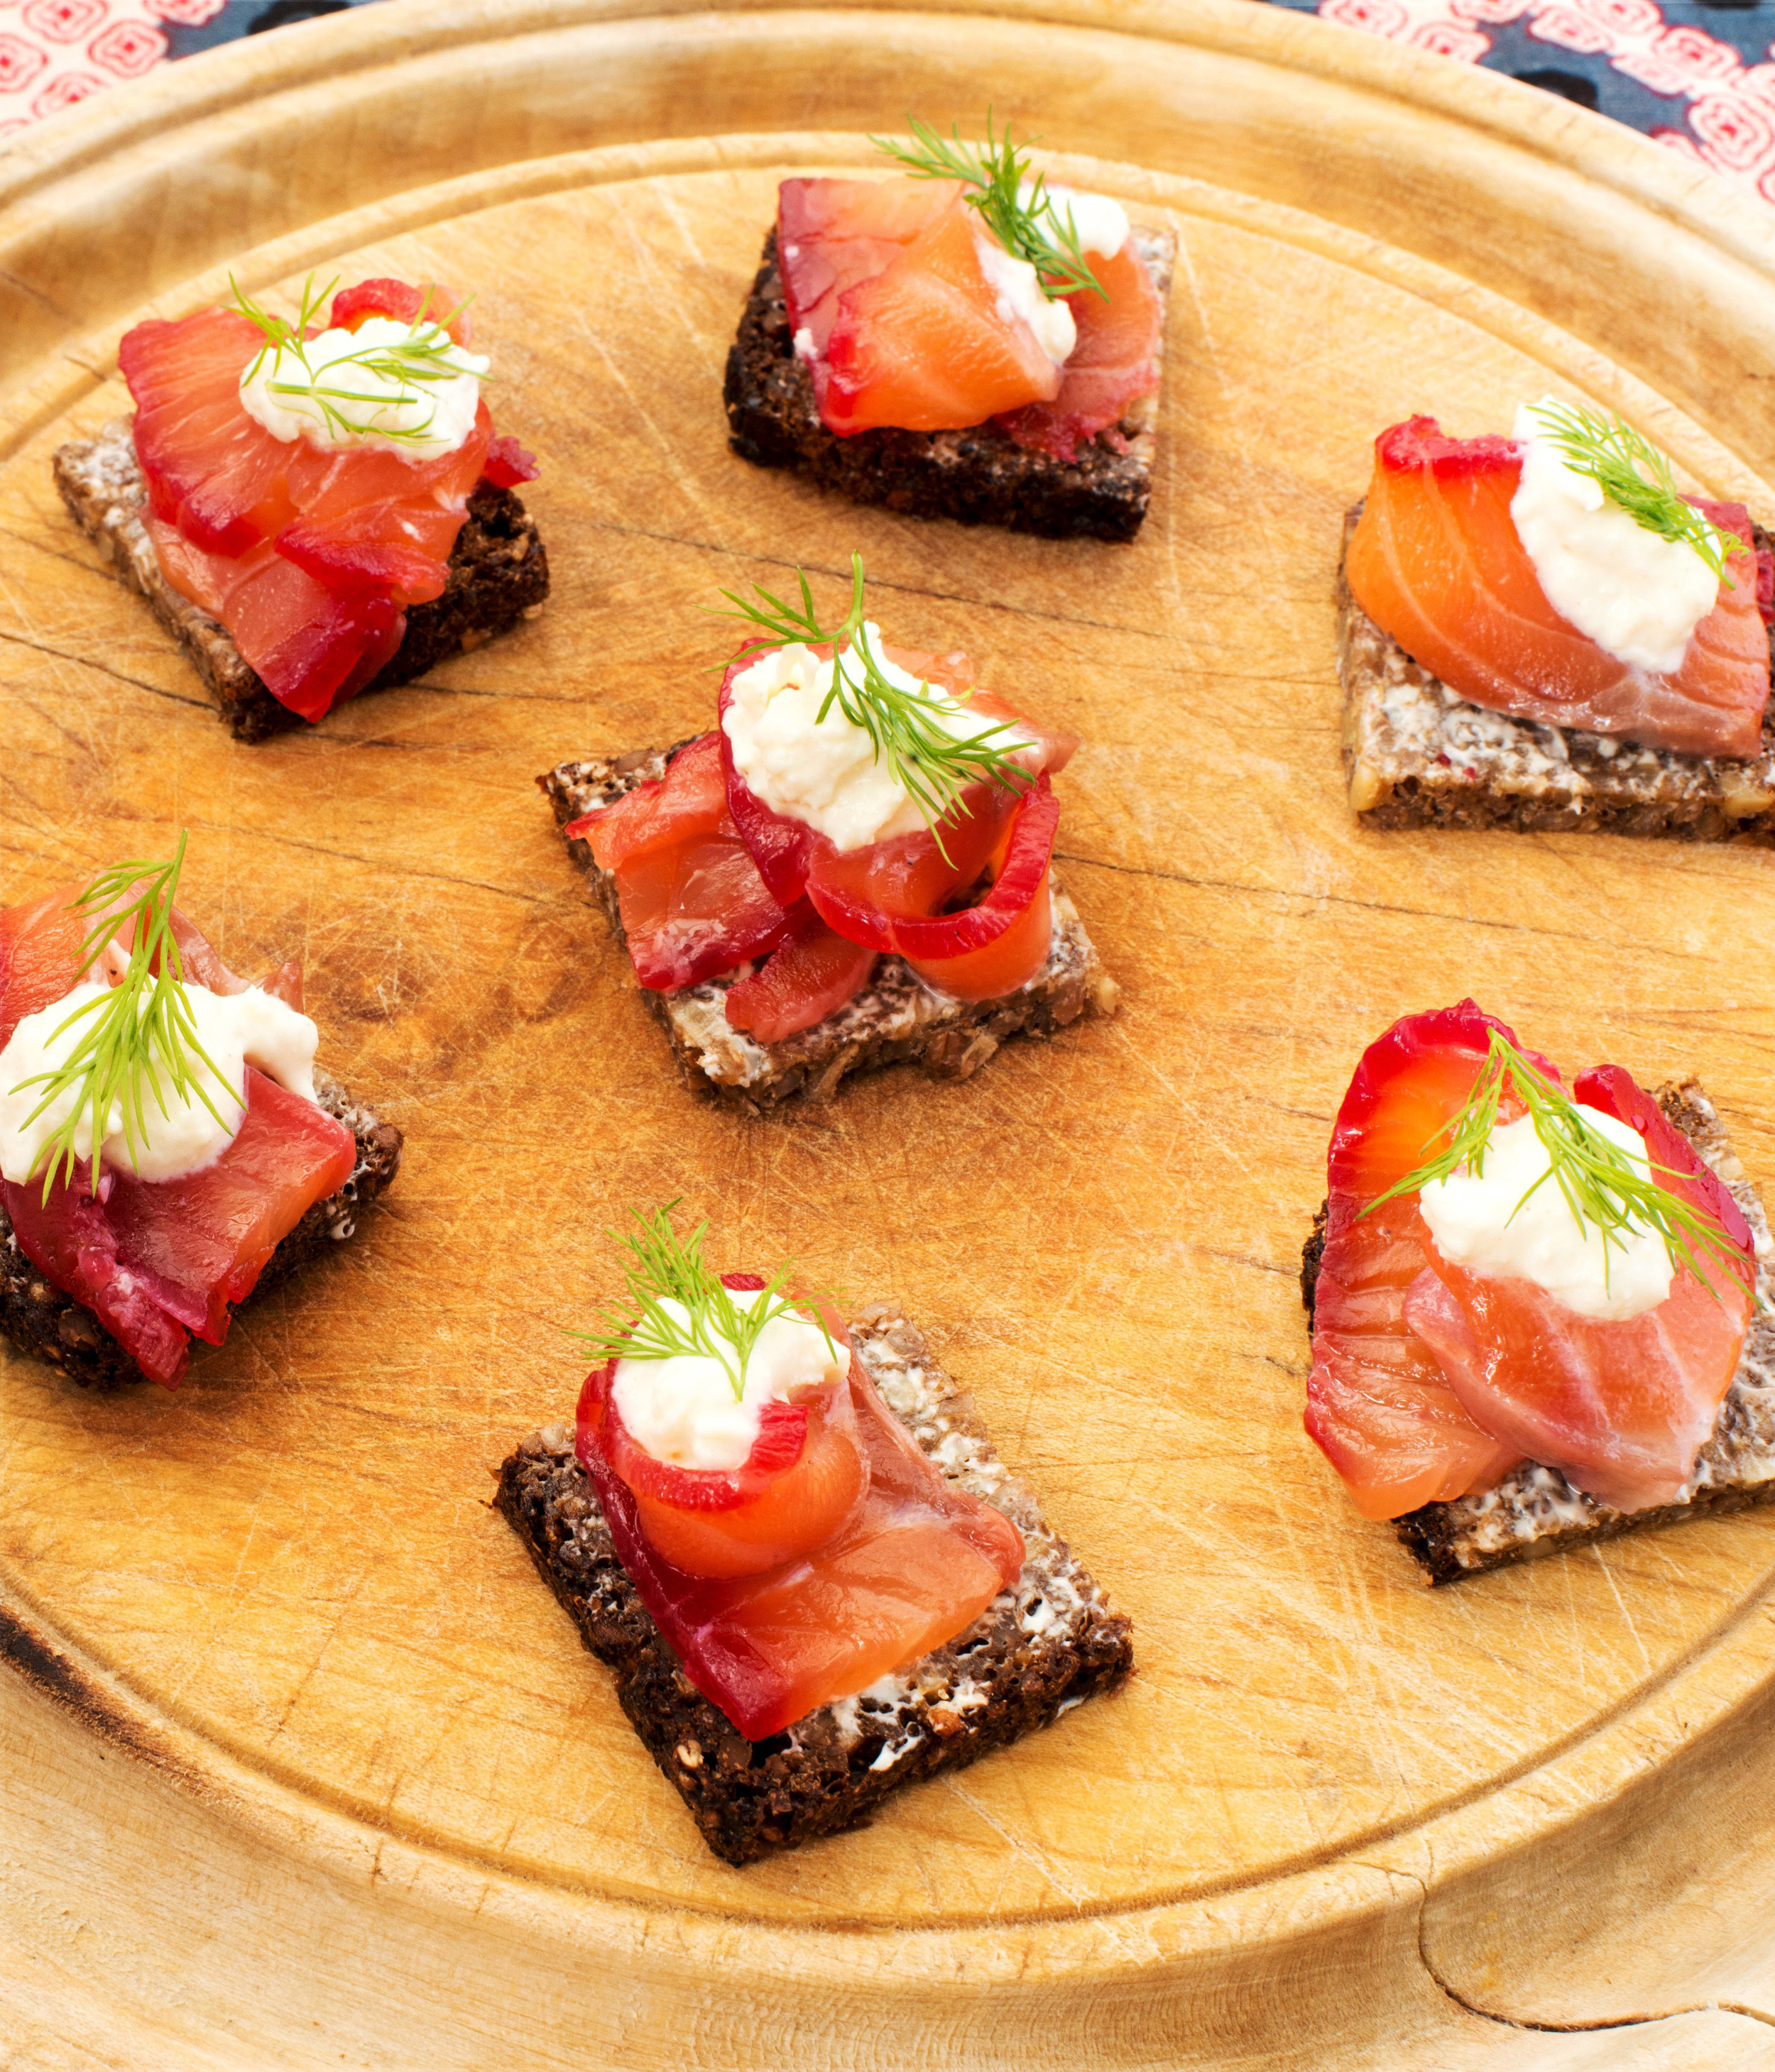 Beetroot cured salmon with horseradish cream on pumpernickle